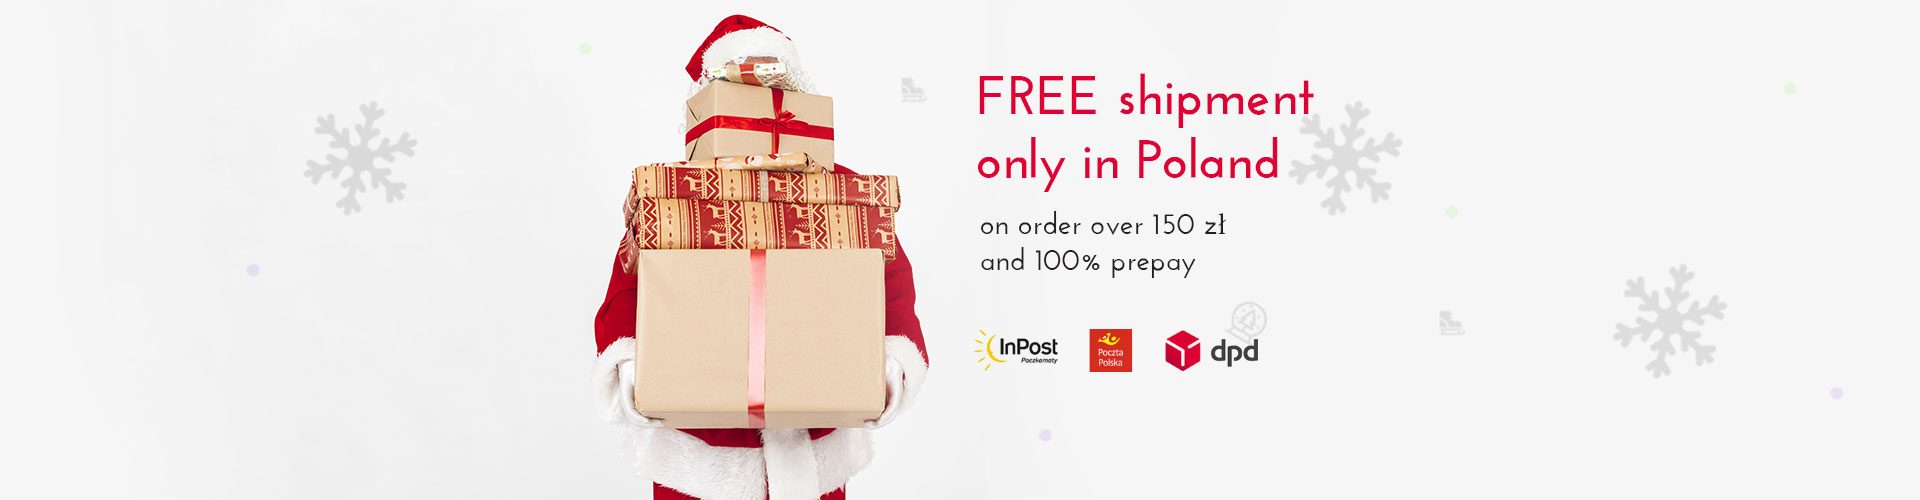 FREE shipment only in Poland